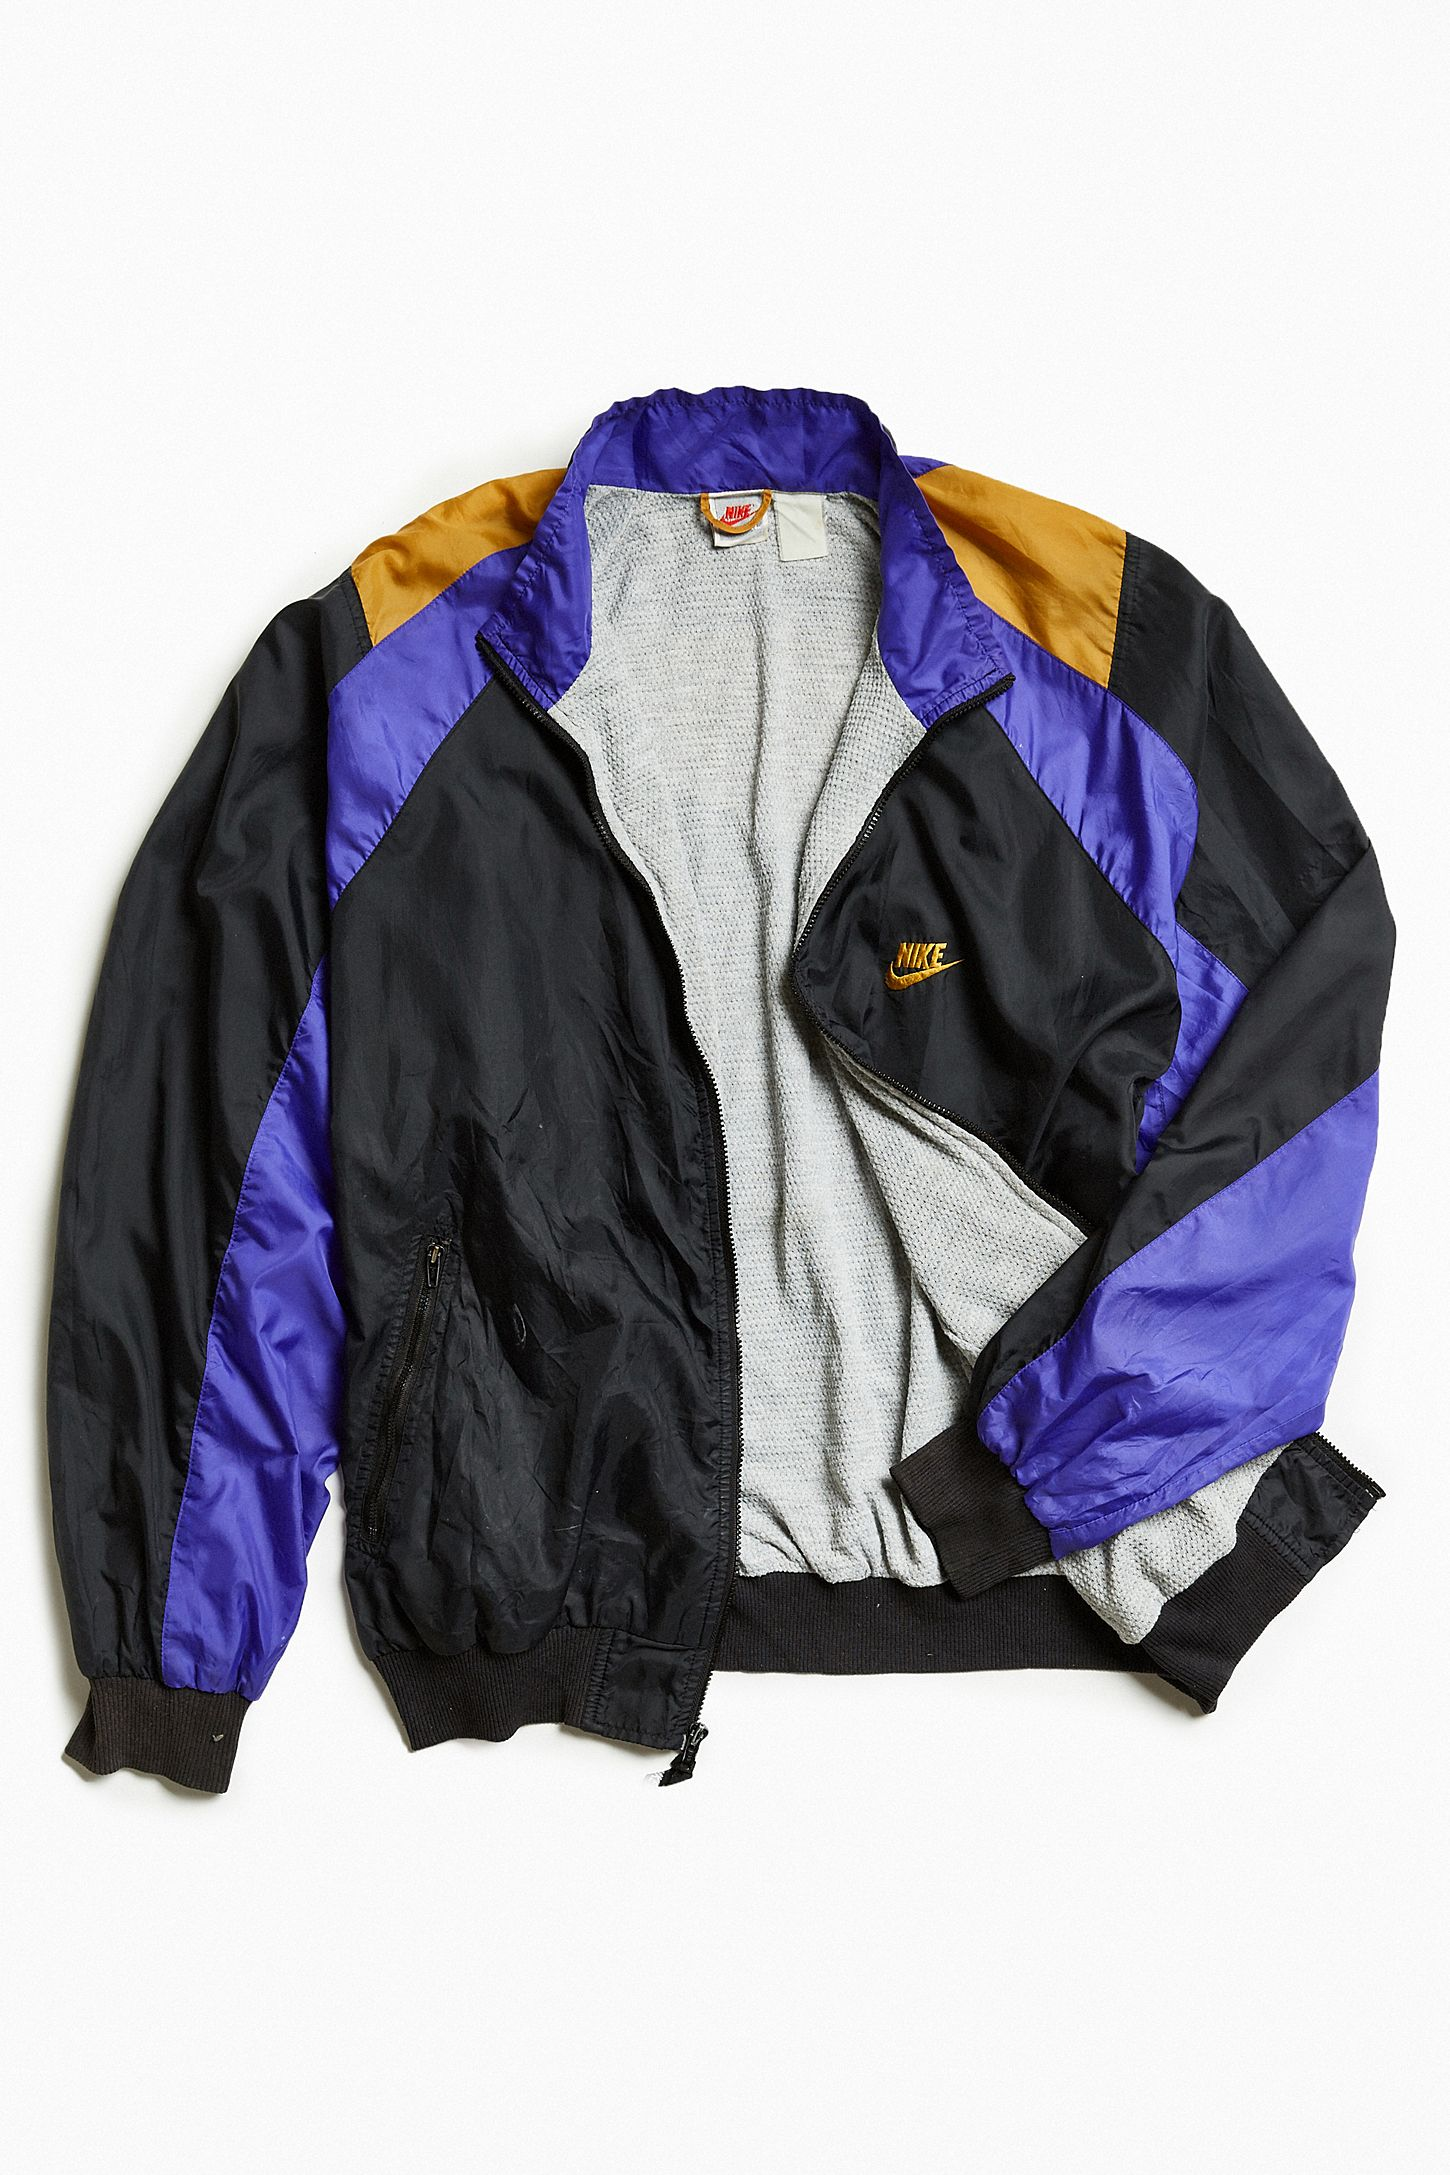 507560686f99 Vintage Nike Windbreaker Jacket